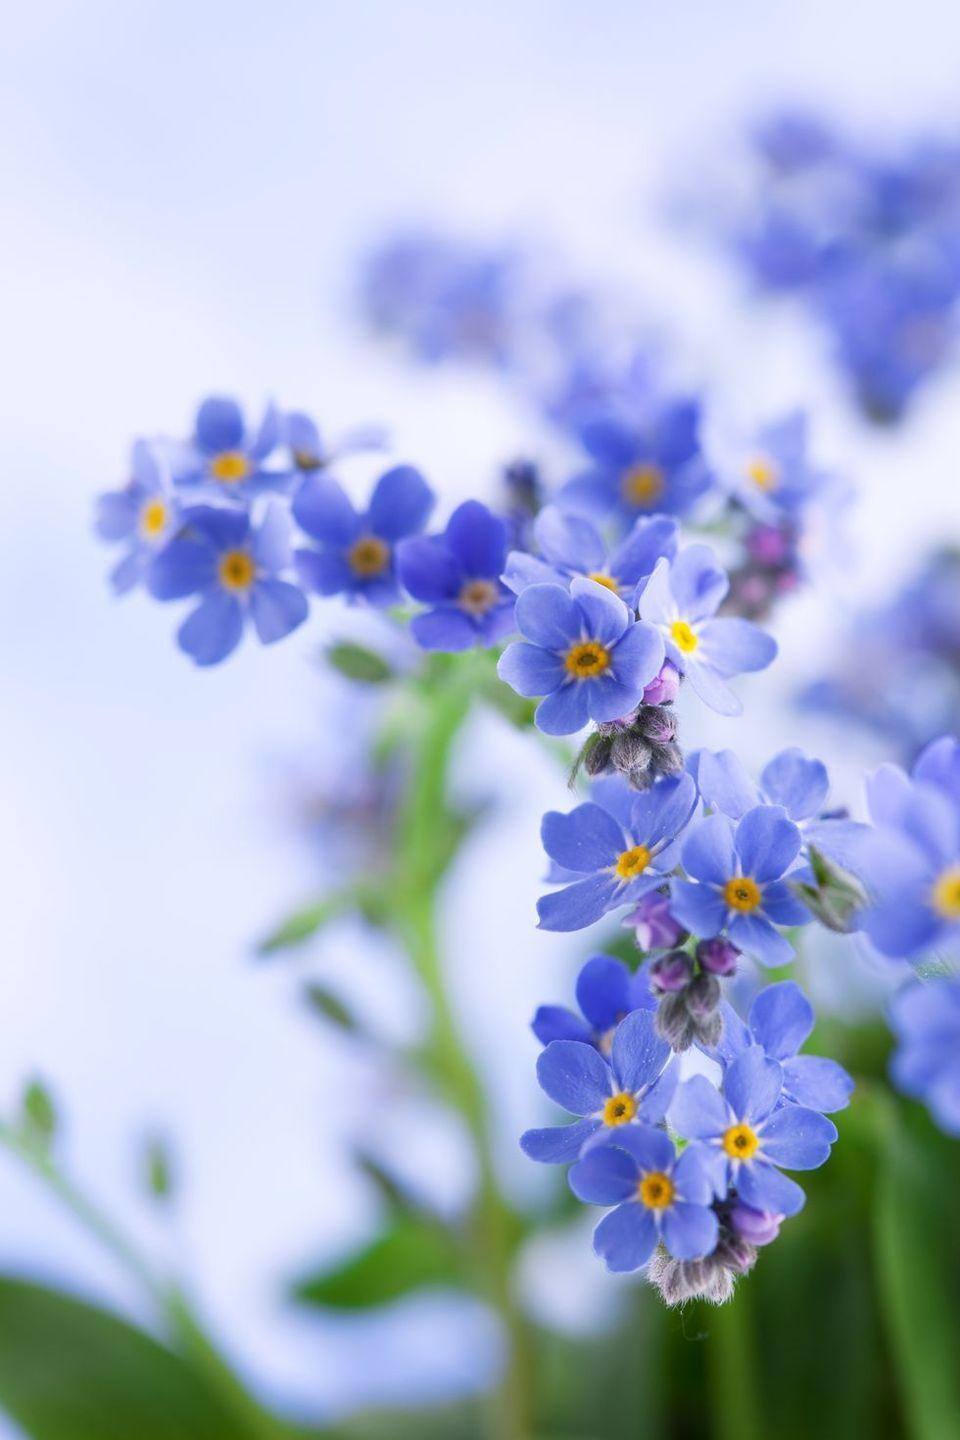 <p>Yes, it's all in the name! Forget-me-nots ask that you forget-me-not. A faraway friend would surely appreciate these delicate blossoms. </p>